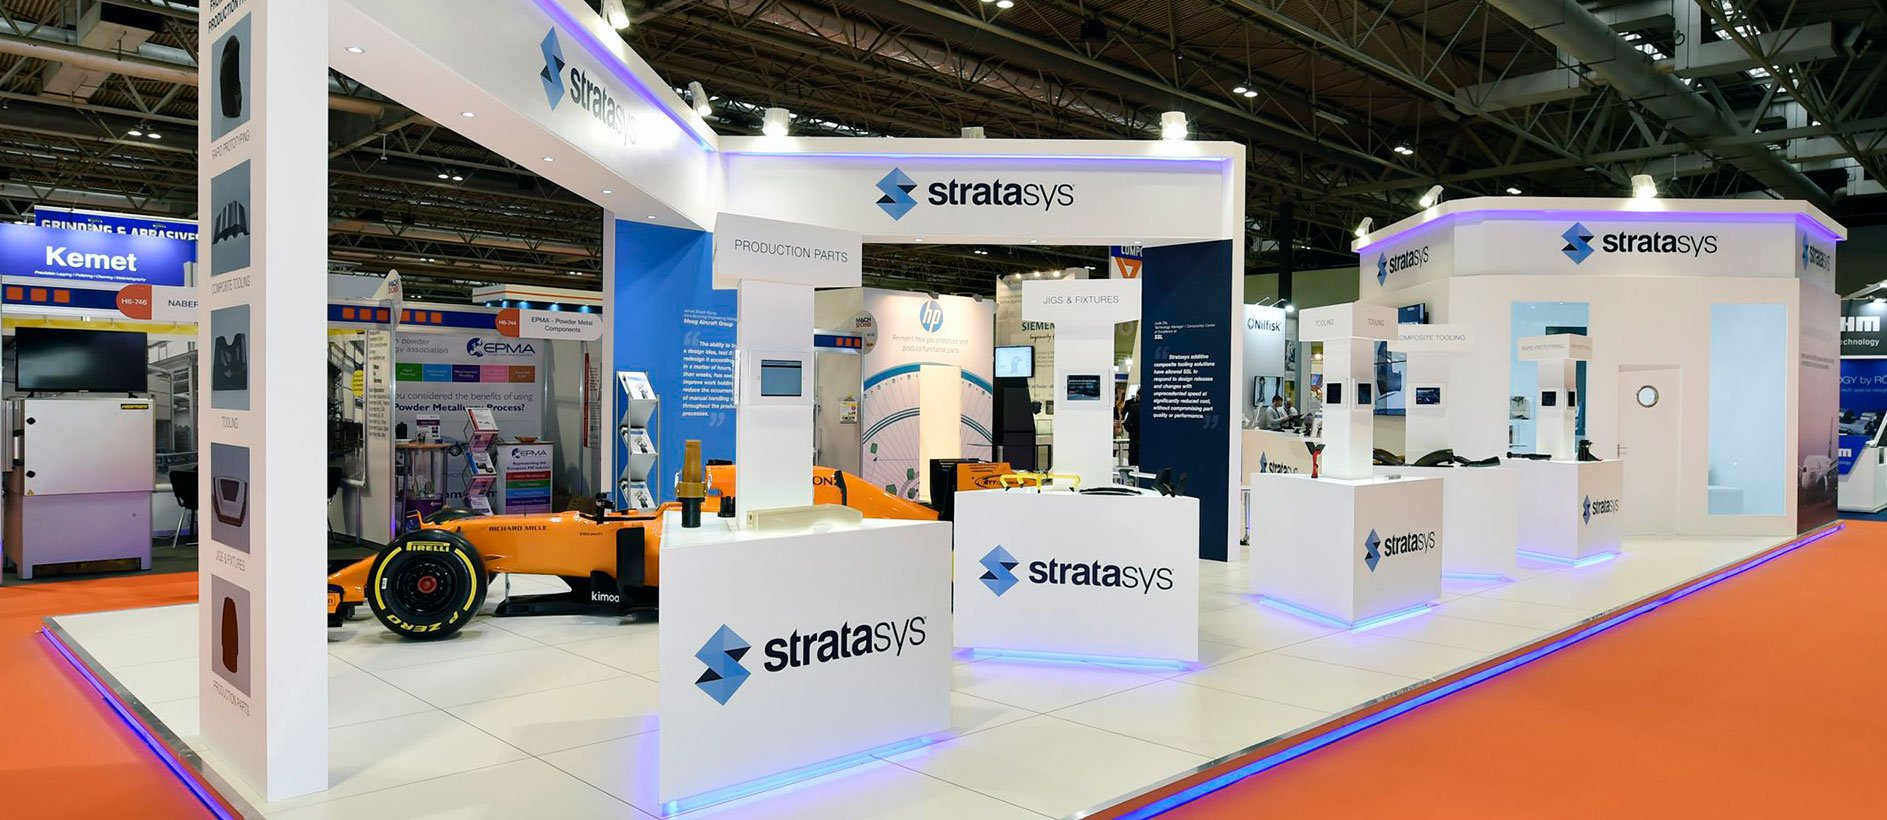 Furniture, graphics and flooring for Stratasys exhibition